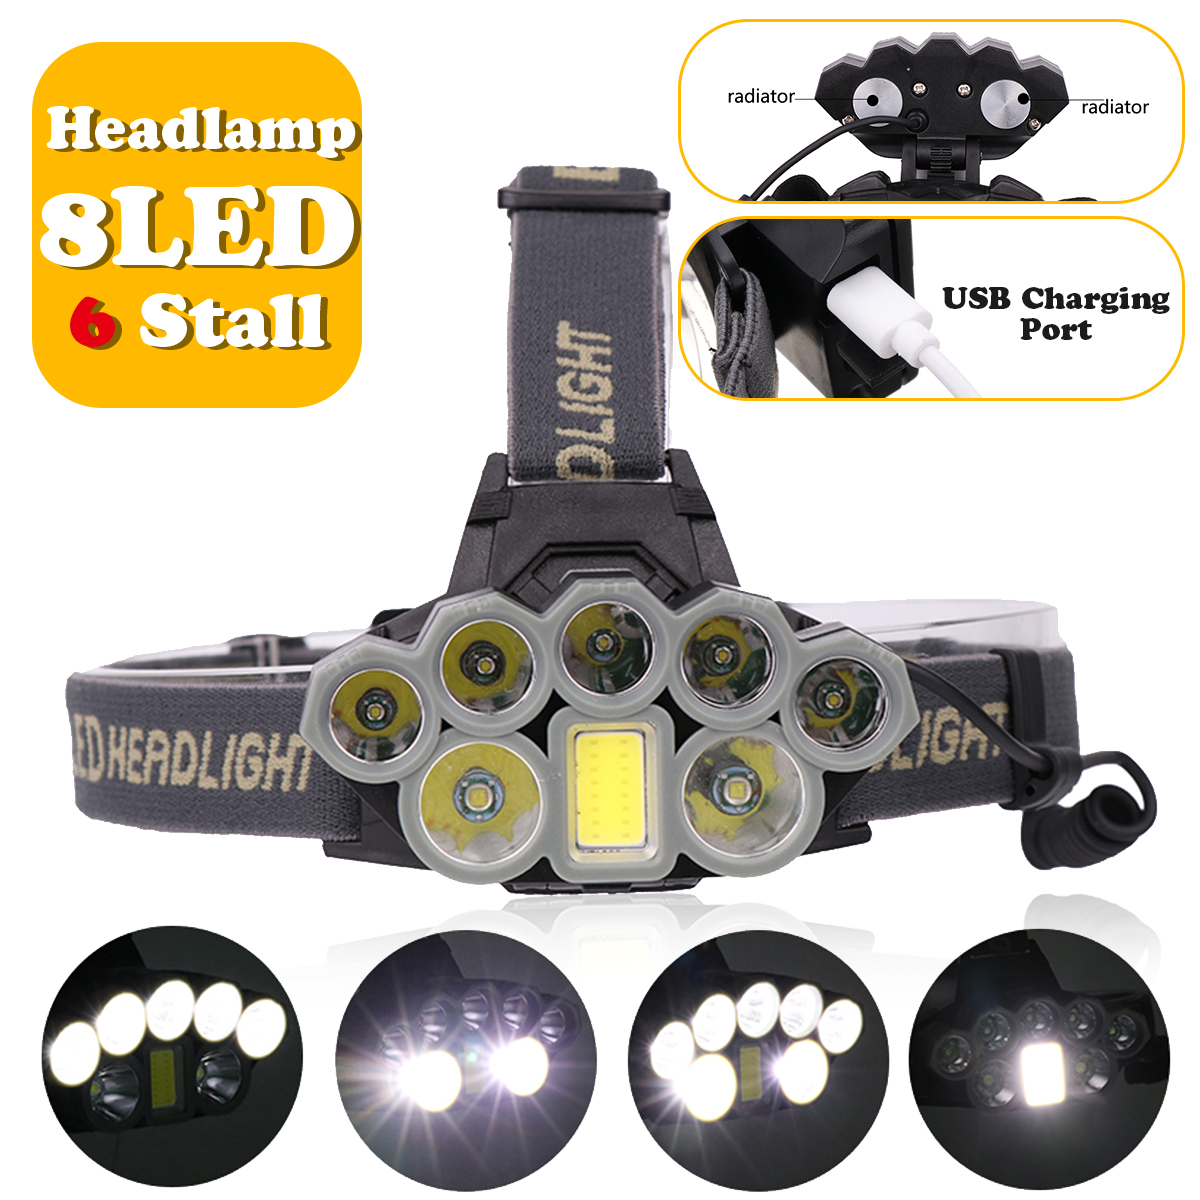 headlight 140000lm LED Smuxi headlamp 7 t6 head light 6 modes waterproof flashlight zoomable 18650 include for hunting cycling